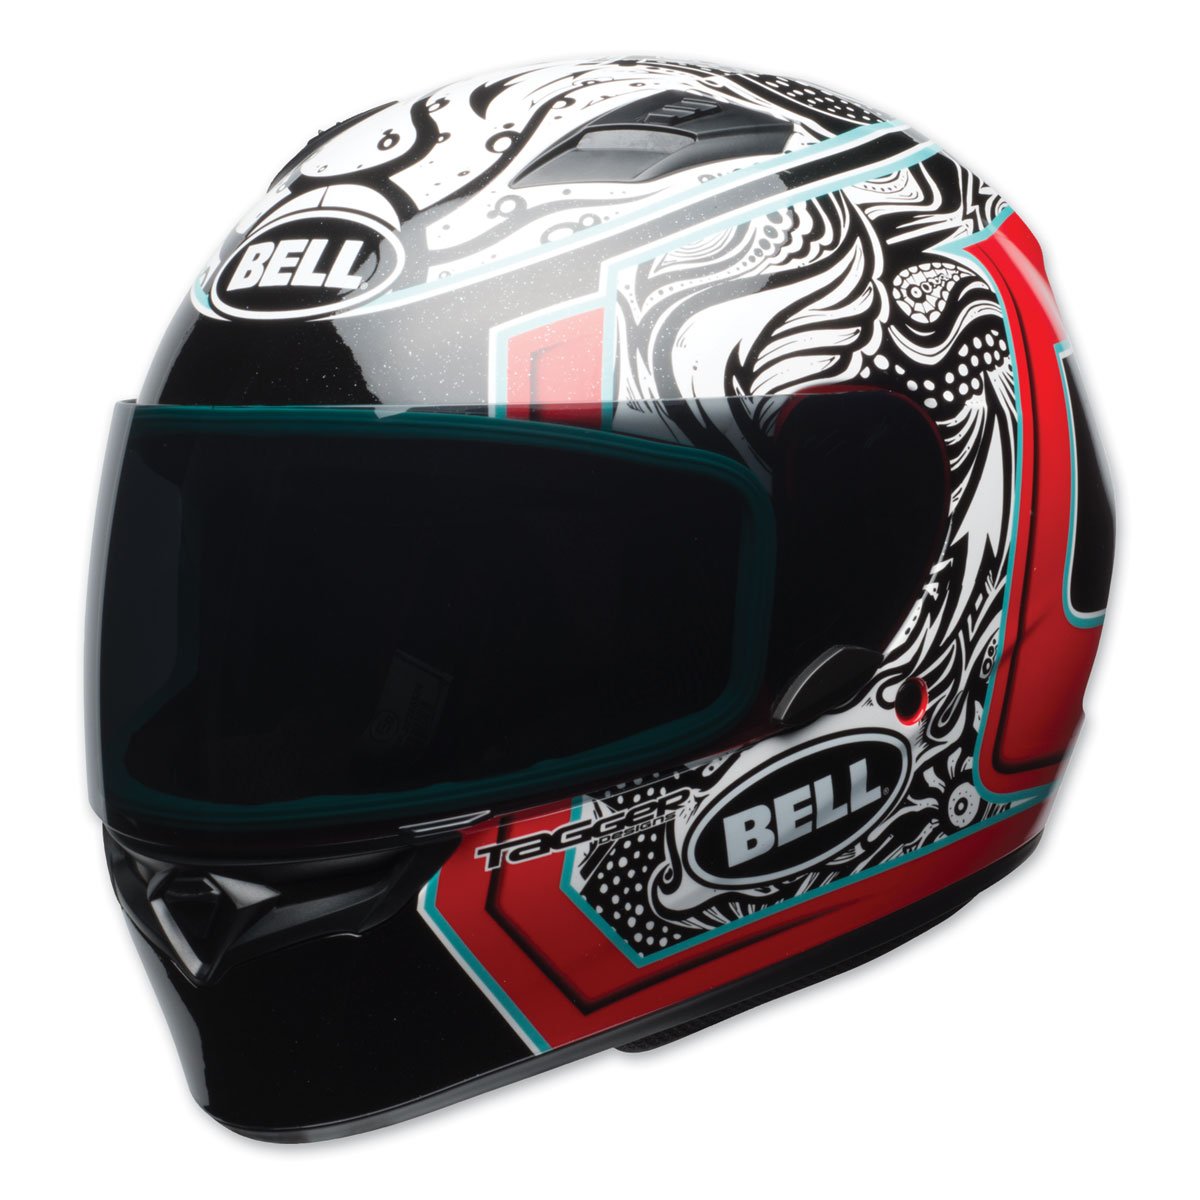 Sick Full Face Motorcycle Helmets Bcca